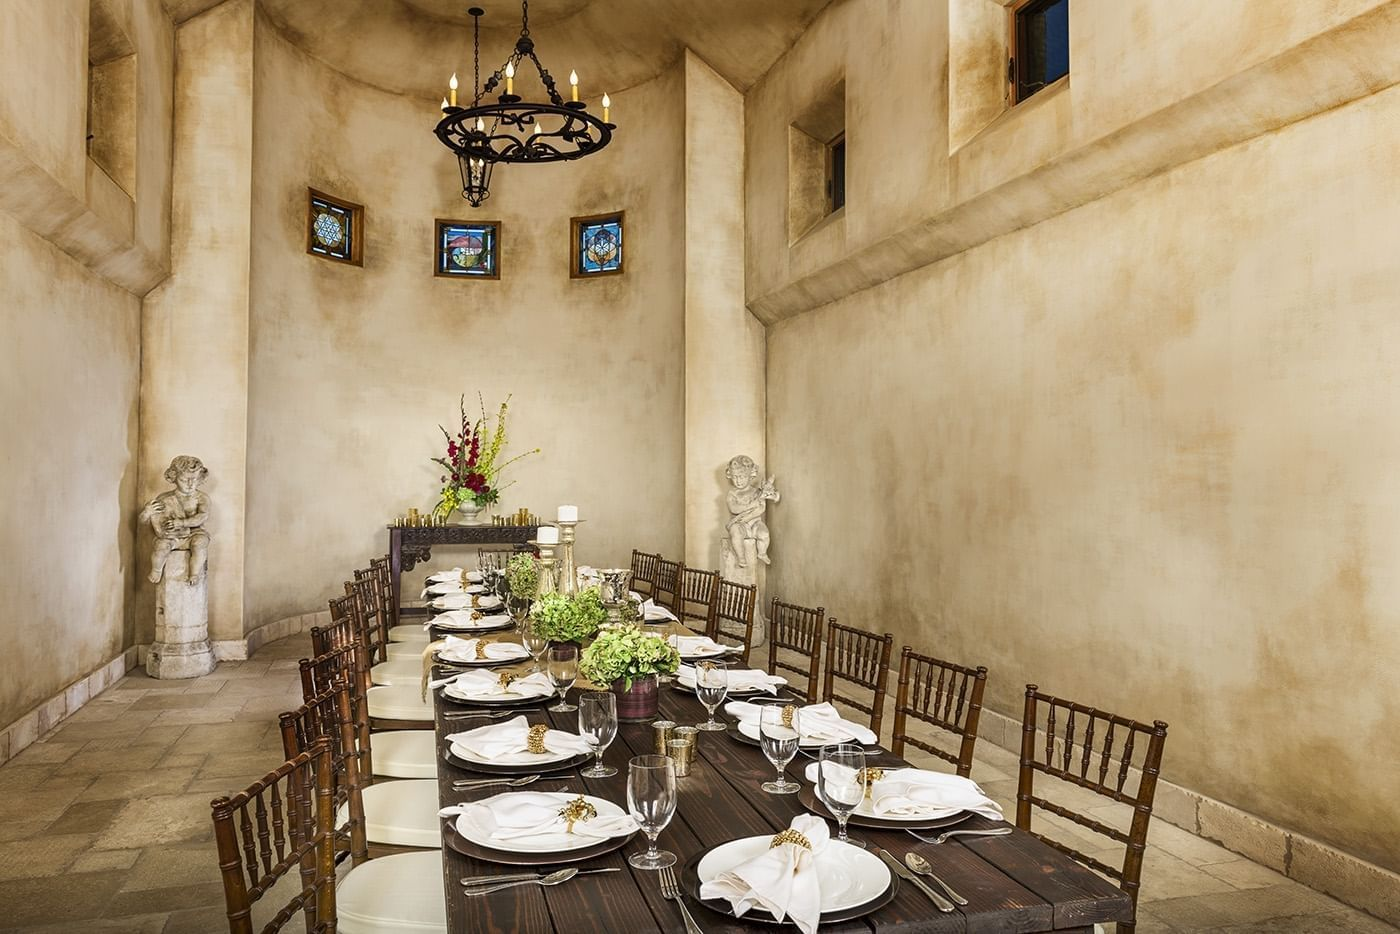 Private dining room area with a long wooden table set for dining